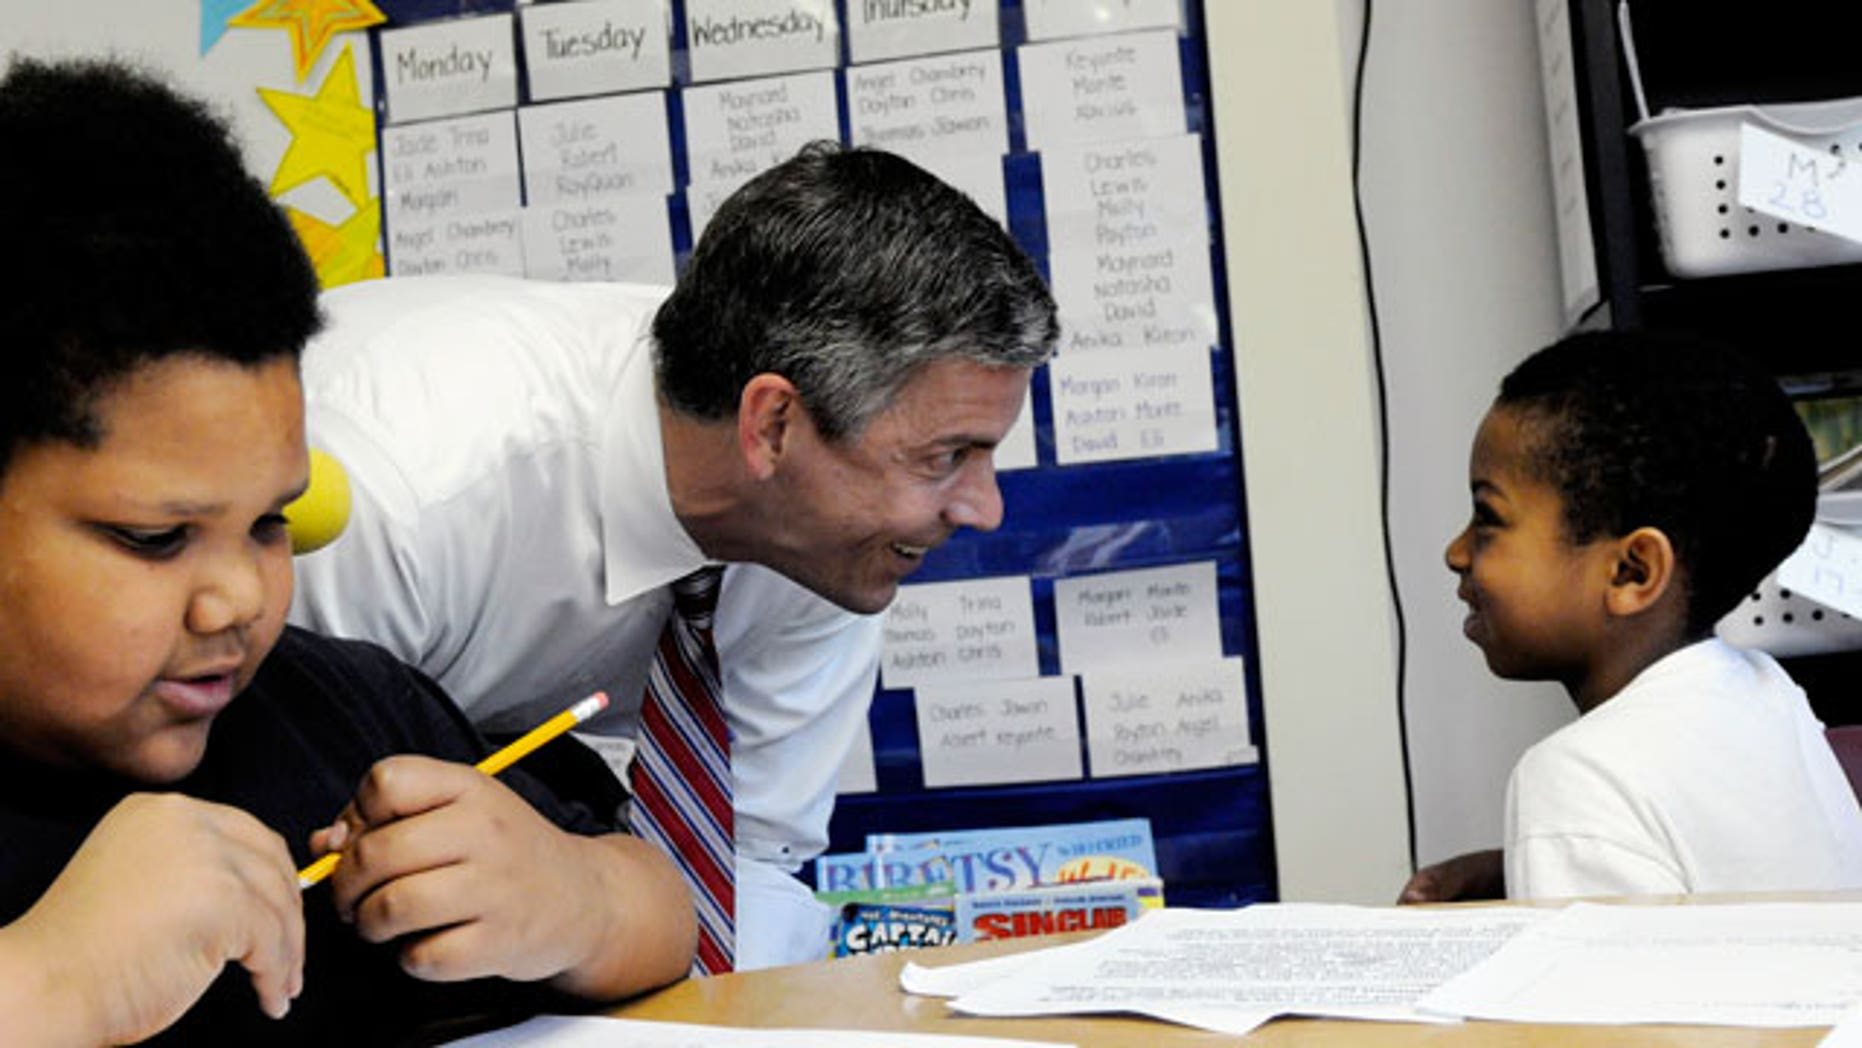 U.S. Education Secretary Arne Duncan visits with students during a visit to Dayton's Bluff Achievement Plus Elementary School Tuesday, May 31, 2011 in Minneapolis. (AP)